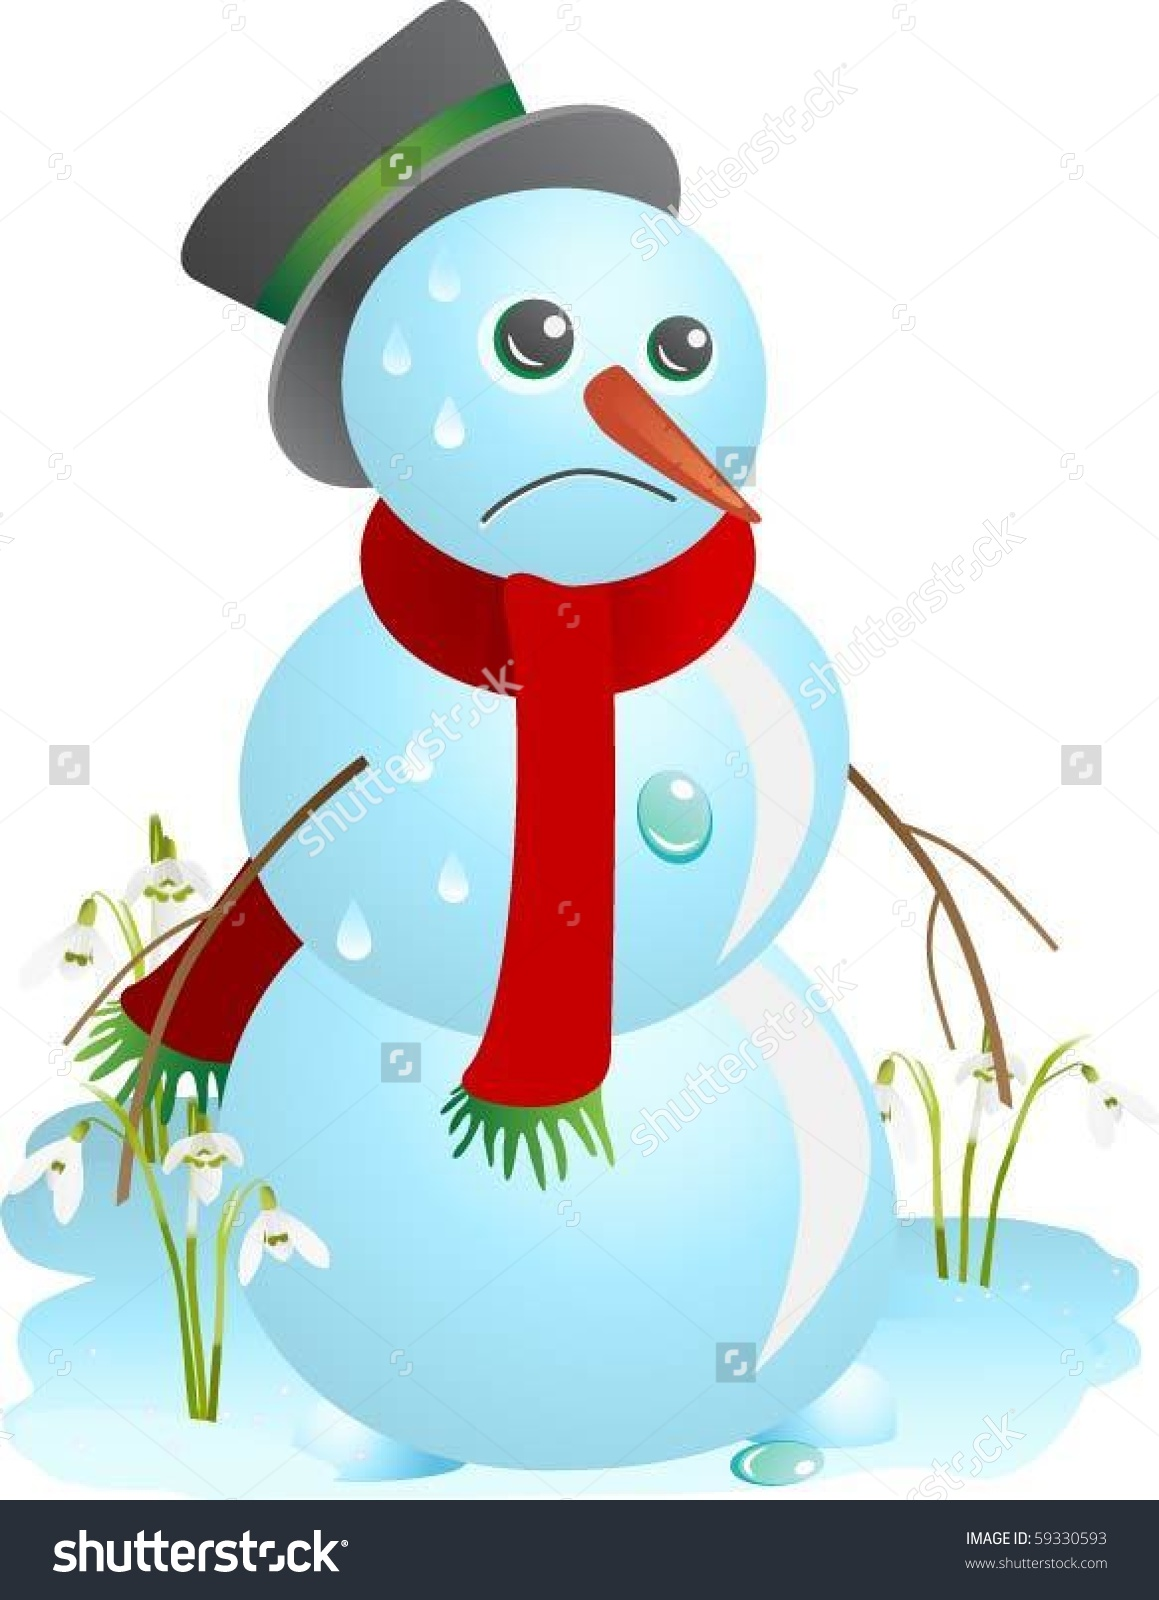 Sad Snowman Melting Spring Vector Illustration Stock Vector.